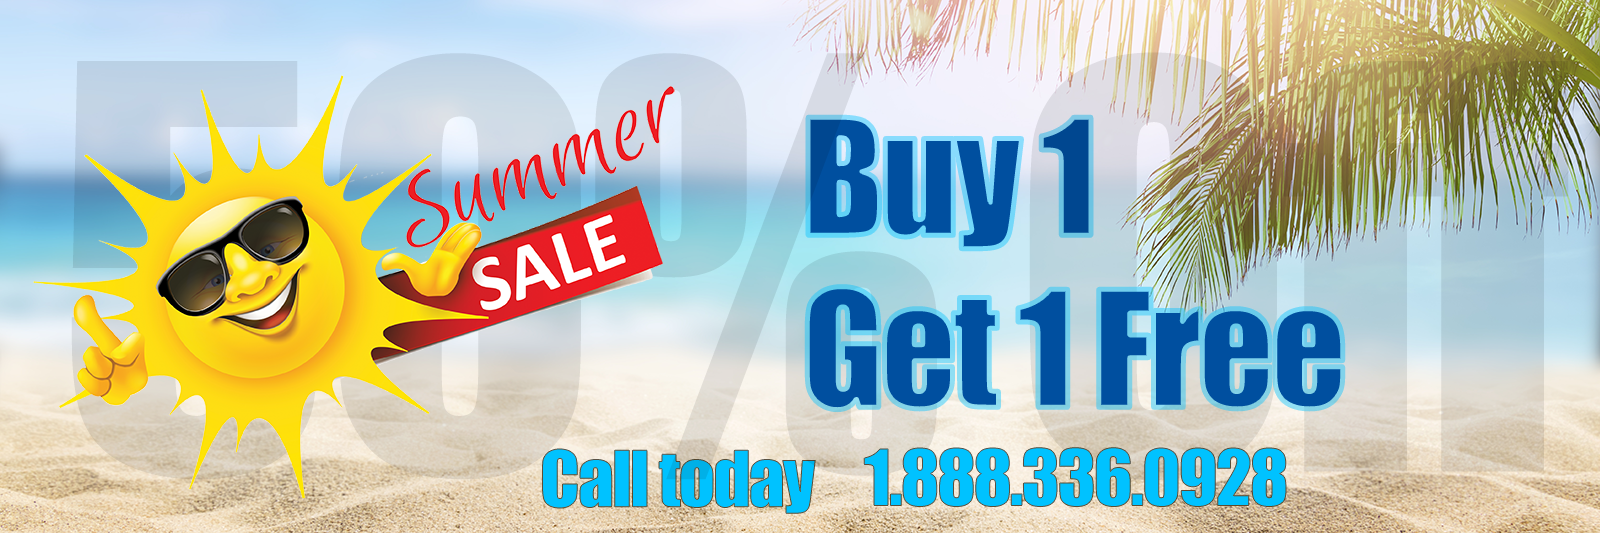 Summer Sale, Buy 1 Get 1 Free, Call Today 1.888.336.0928